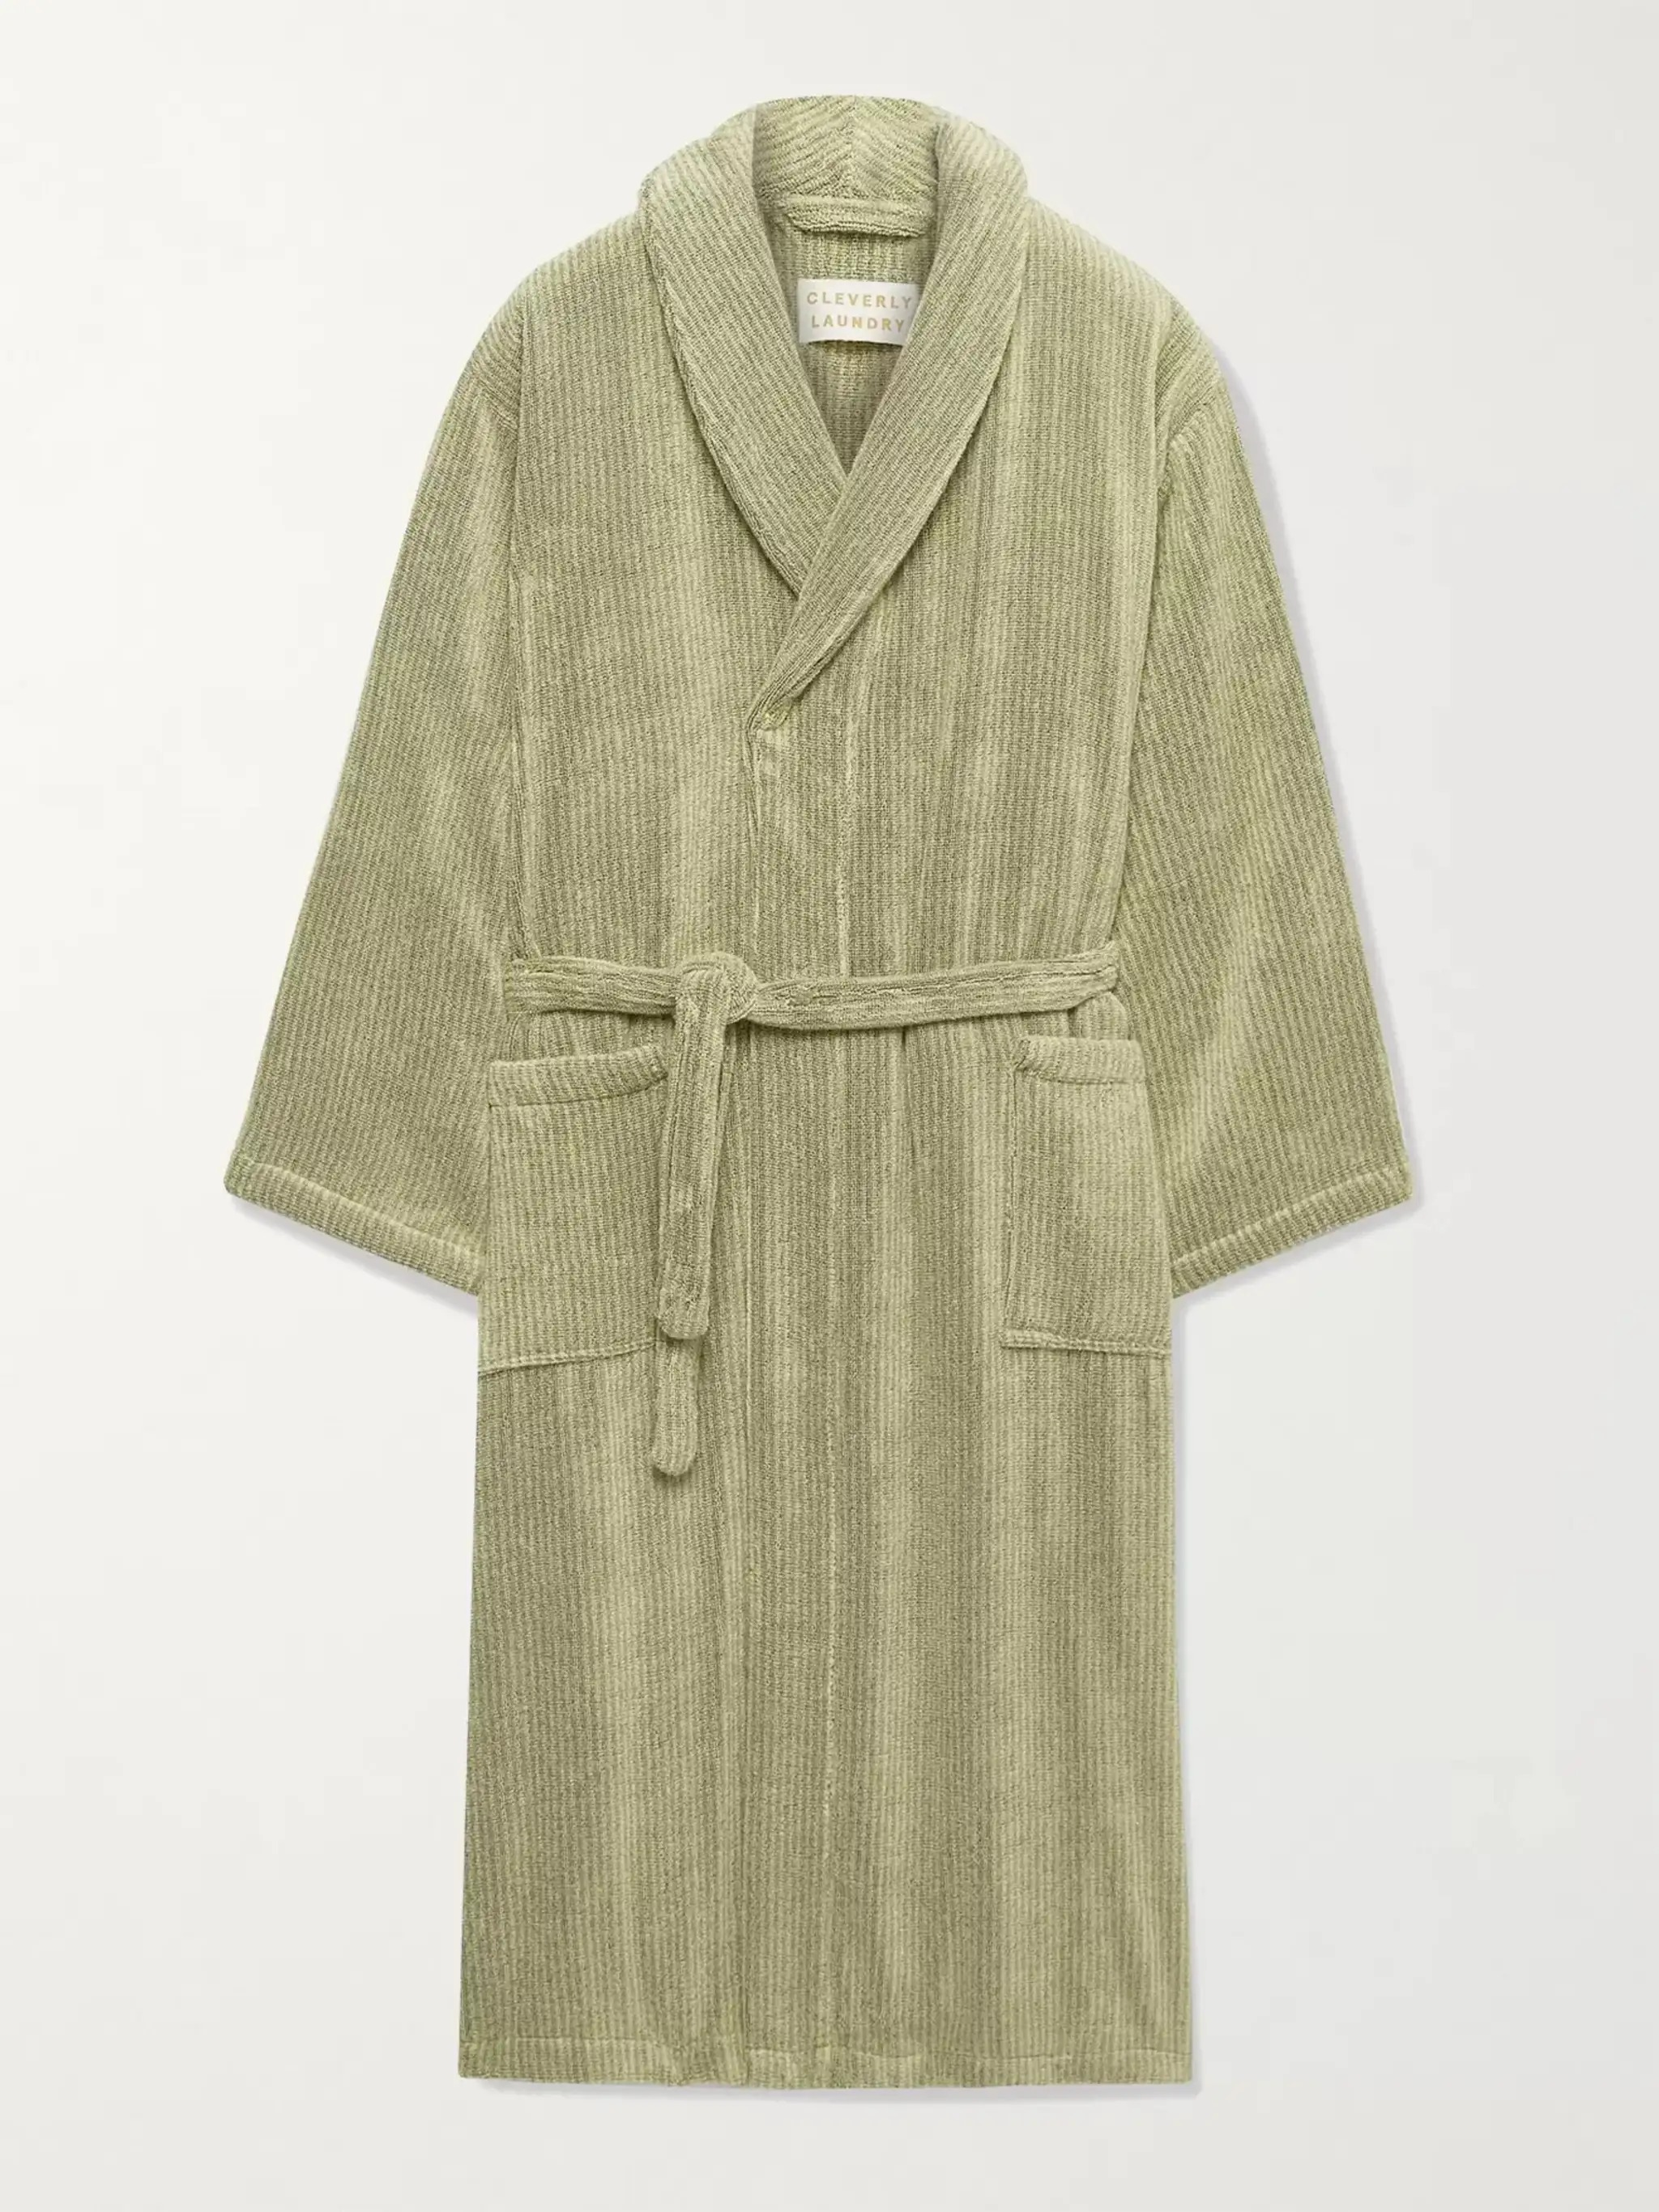 Clevery Laundry Pinstriped Cotton-Terry Robe